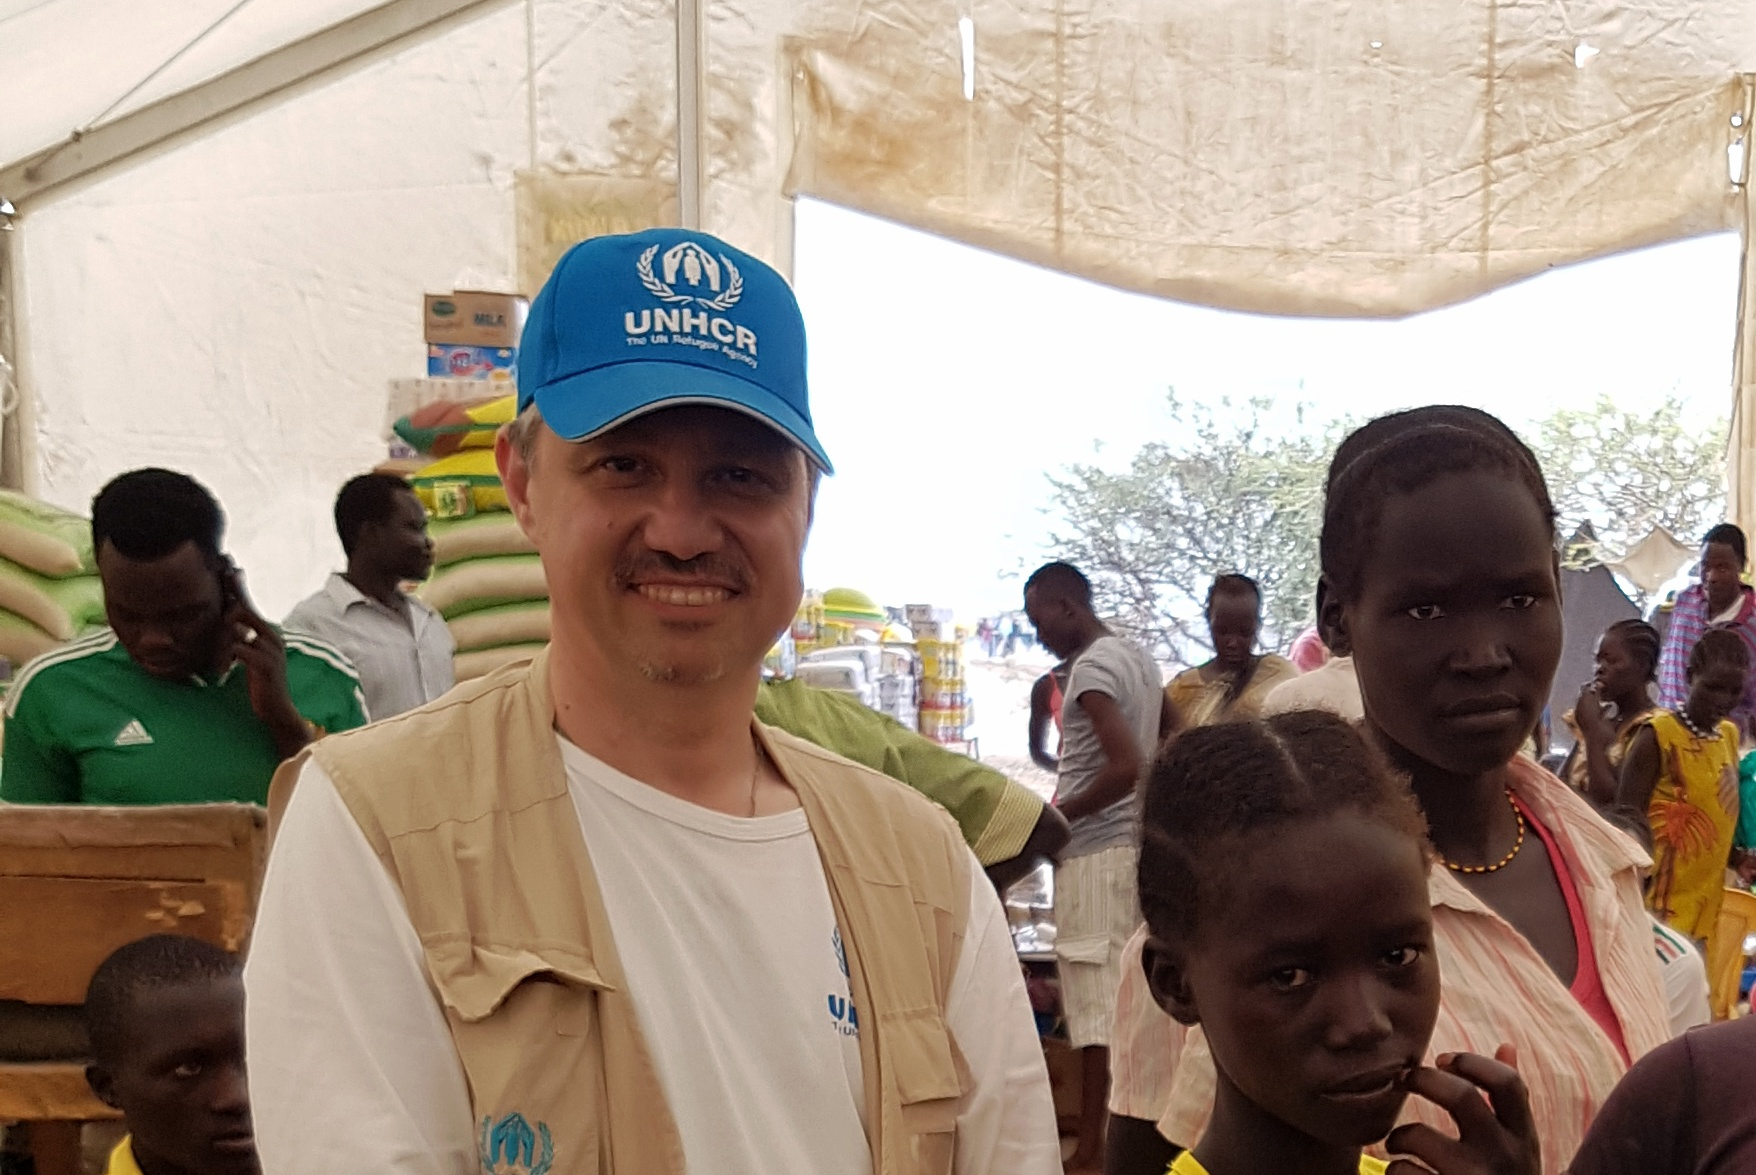 Tayyar Sukru Cansizoglu (Photo courtesy of UNHCR)